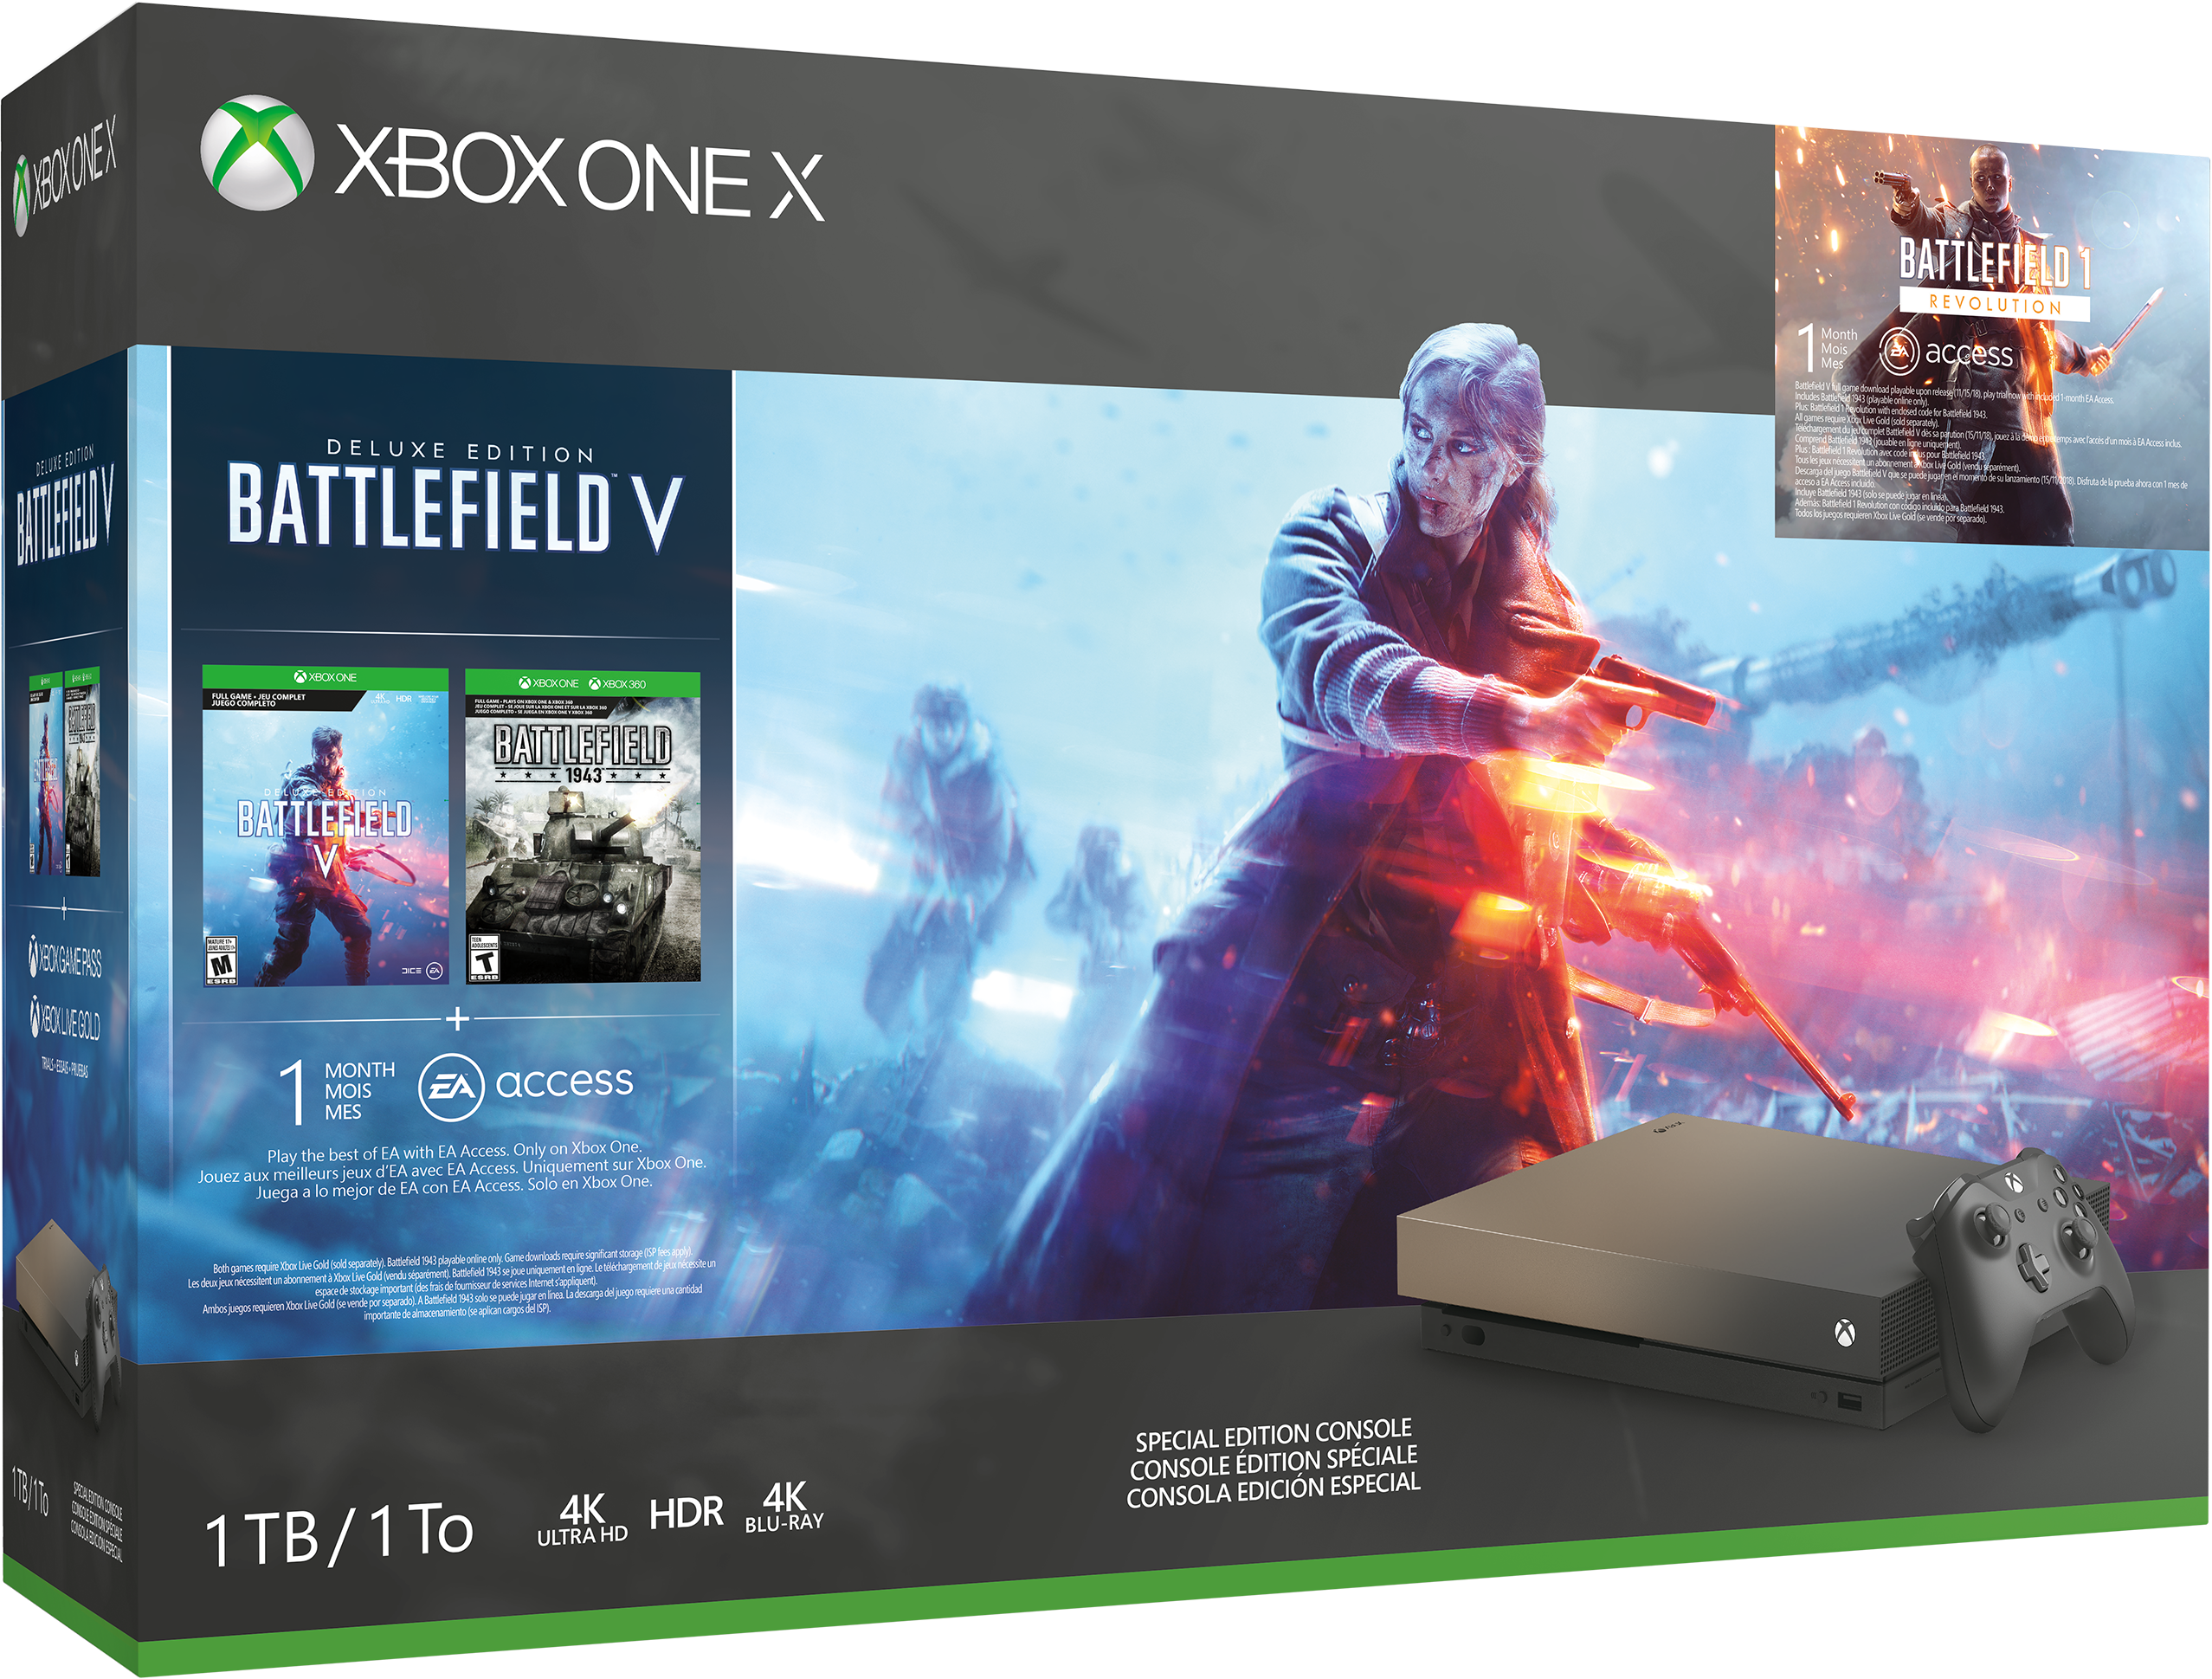 Xbox One X Gold Rush Special Edition Battlefield V bundle box art